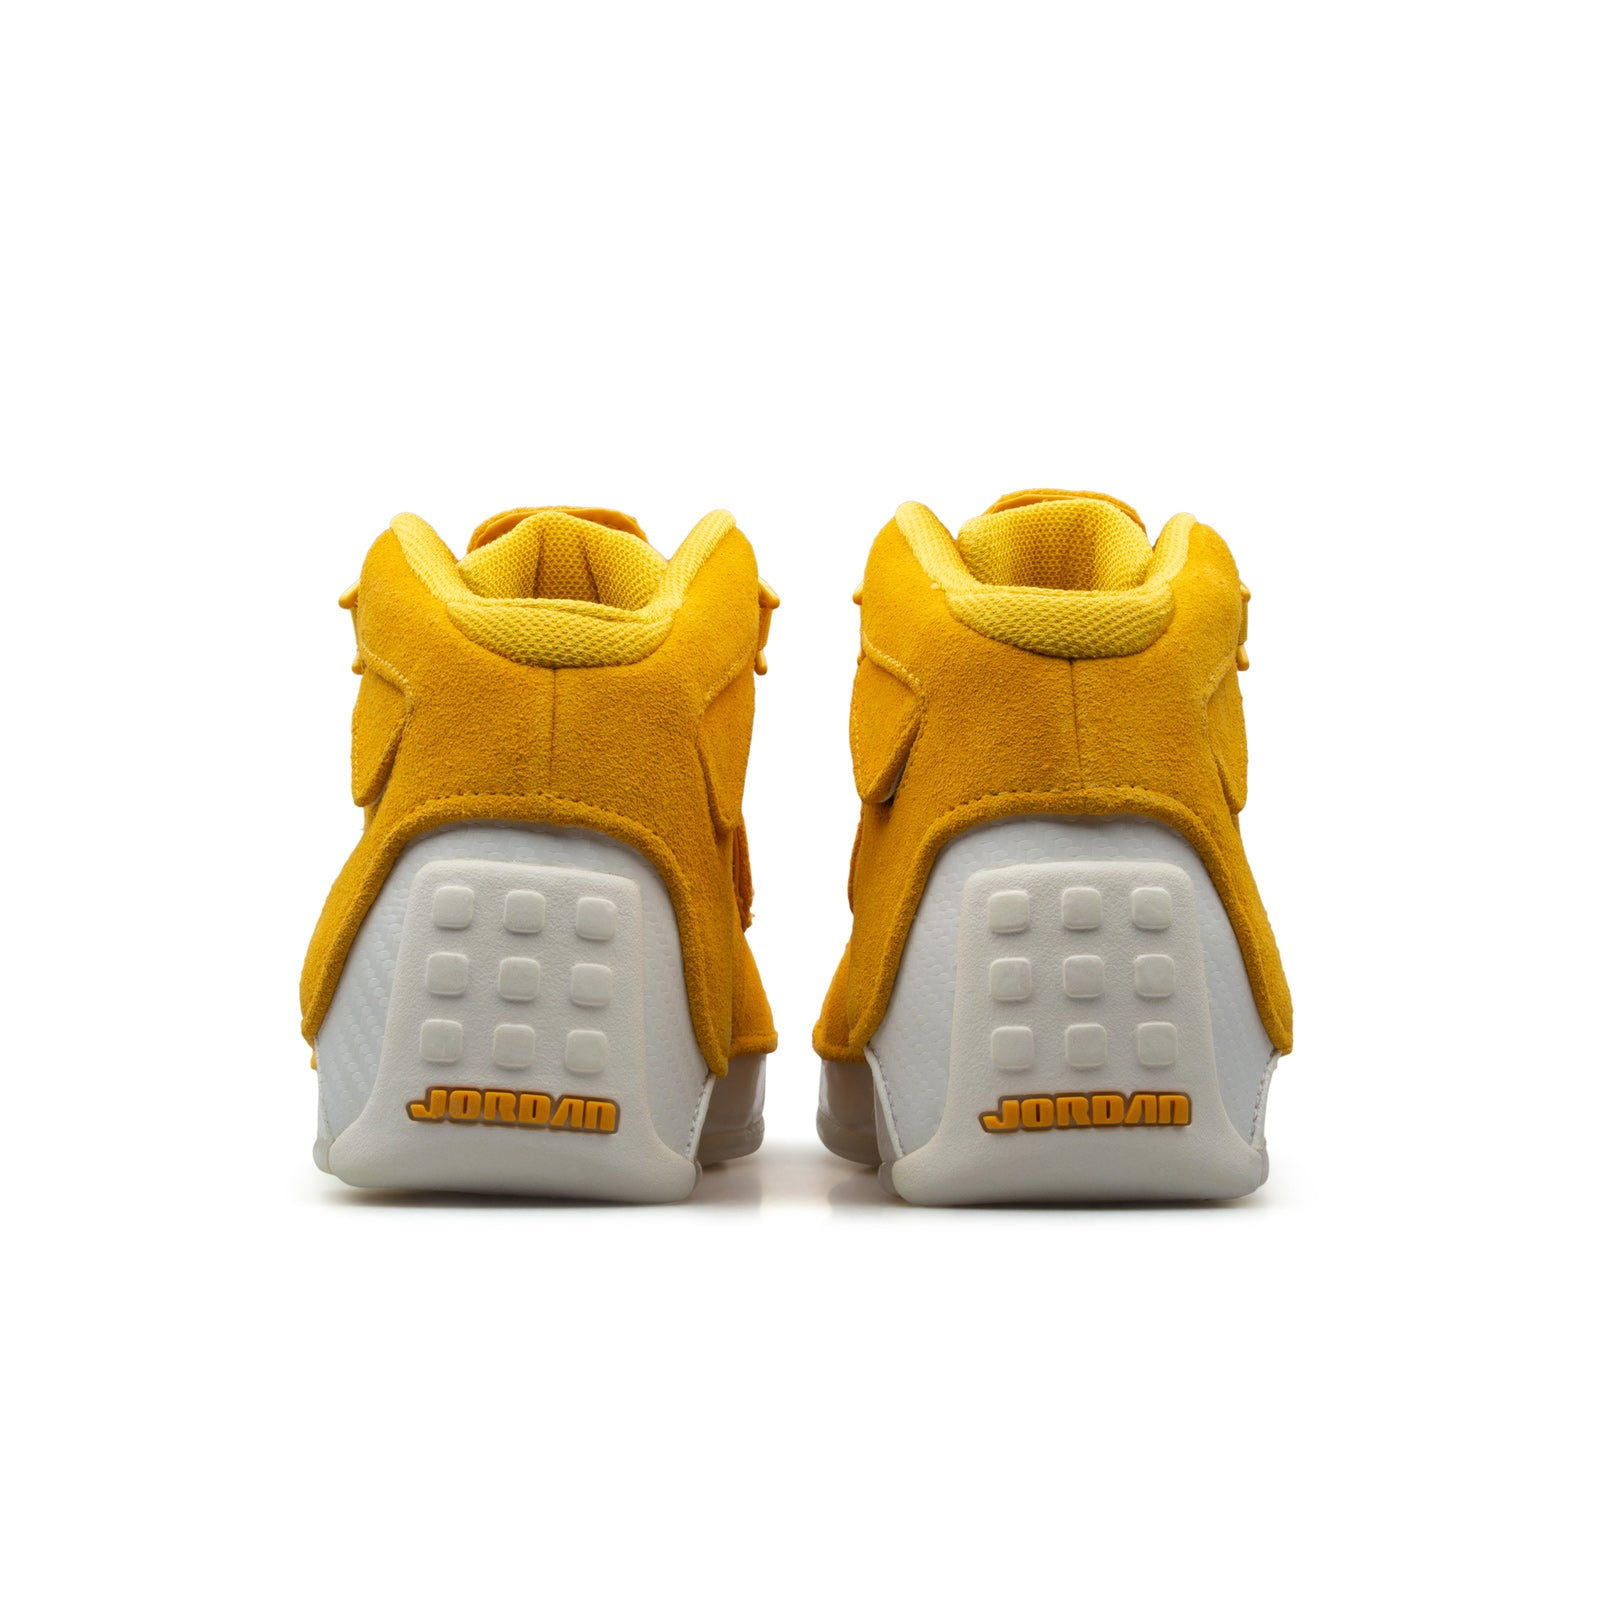 ec720ce6b94 He took the court in 1985 wearing the original Air Jordan I, simultaneously  breaking league rules and his opponents' will while capturing the  imagination of ...